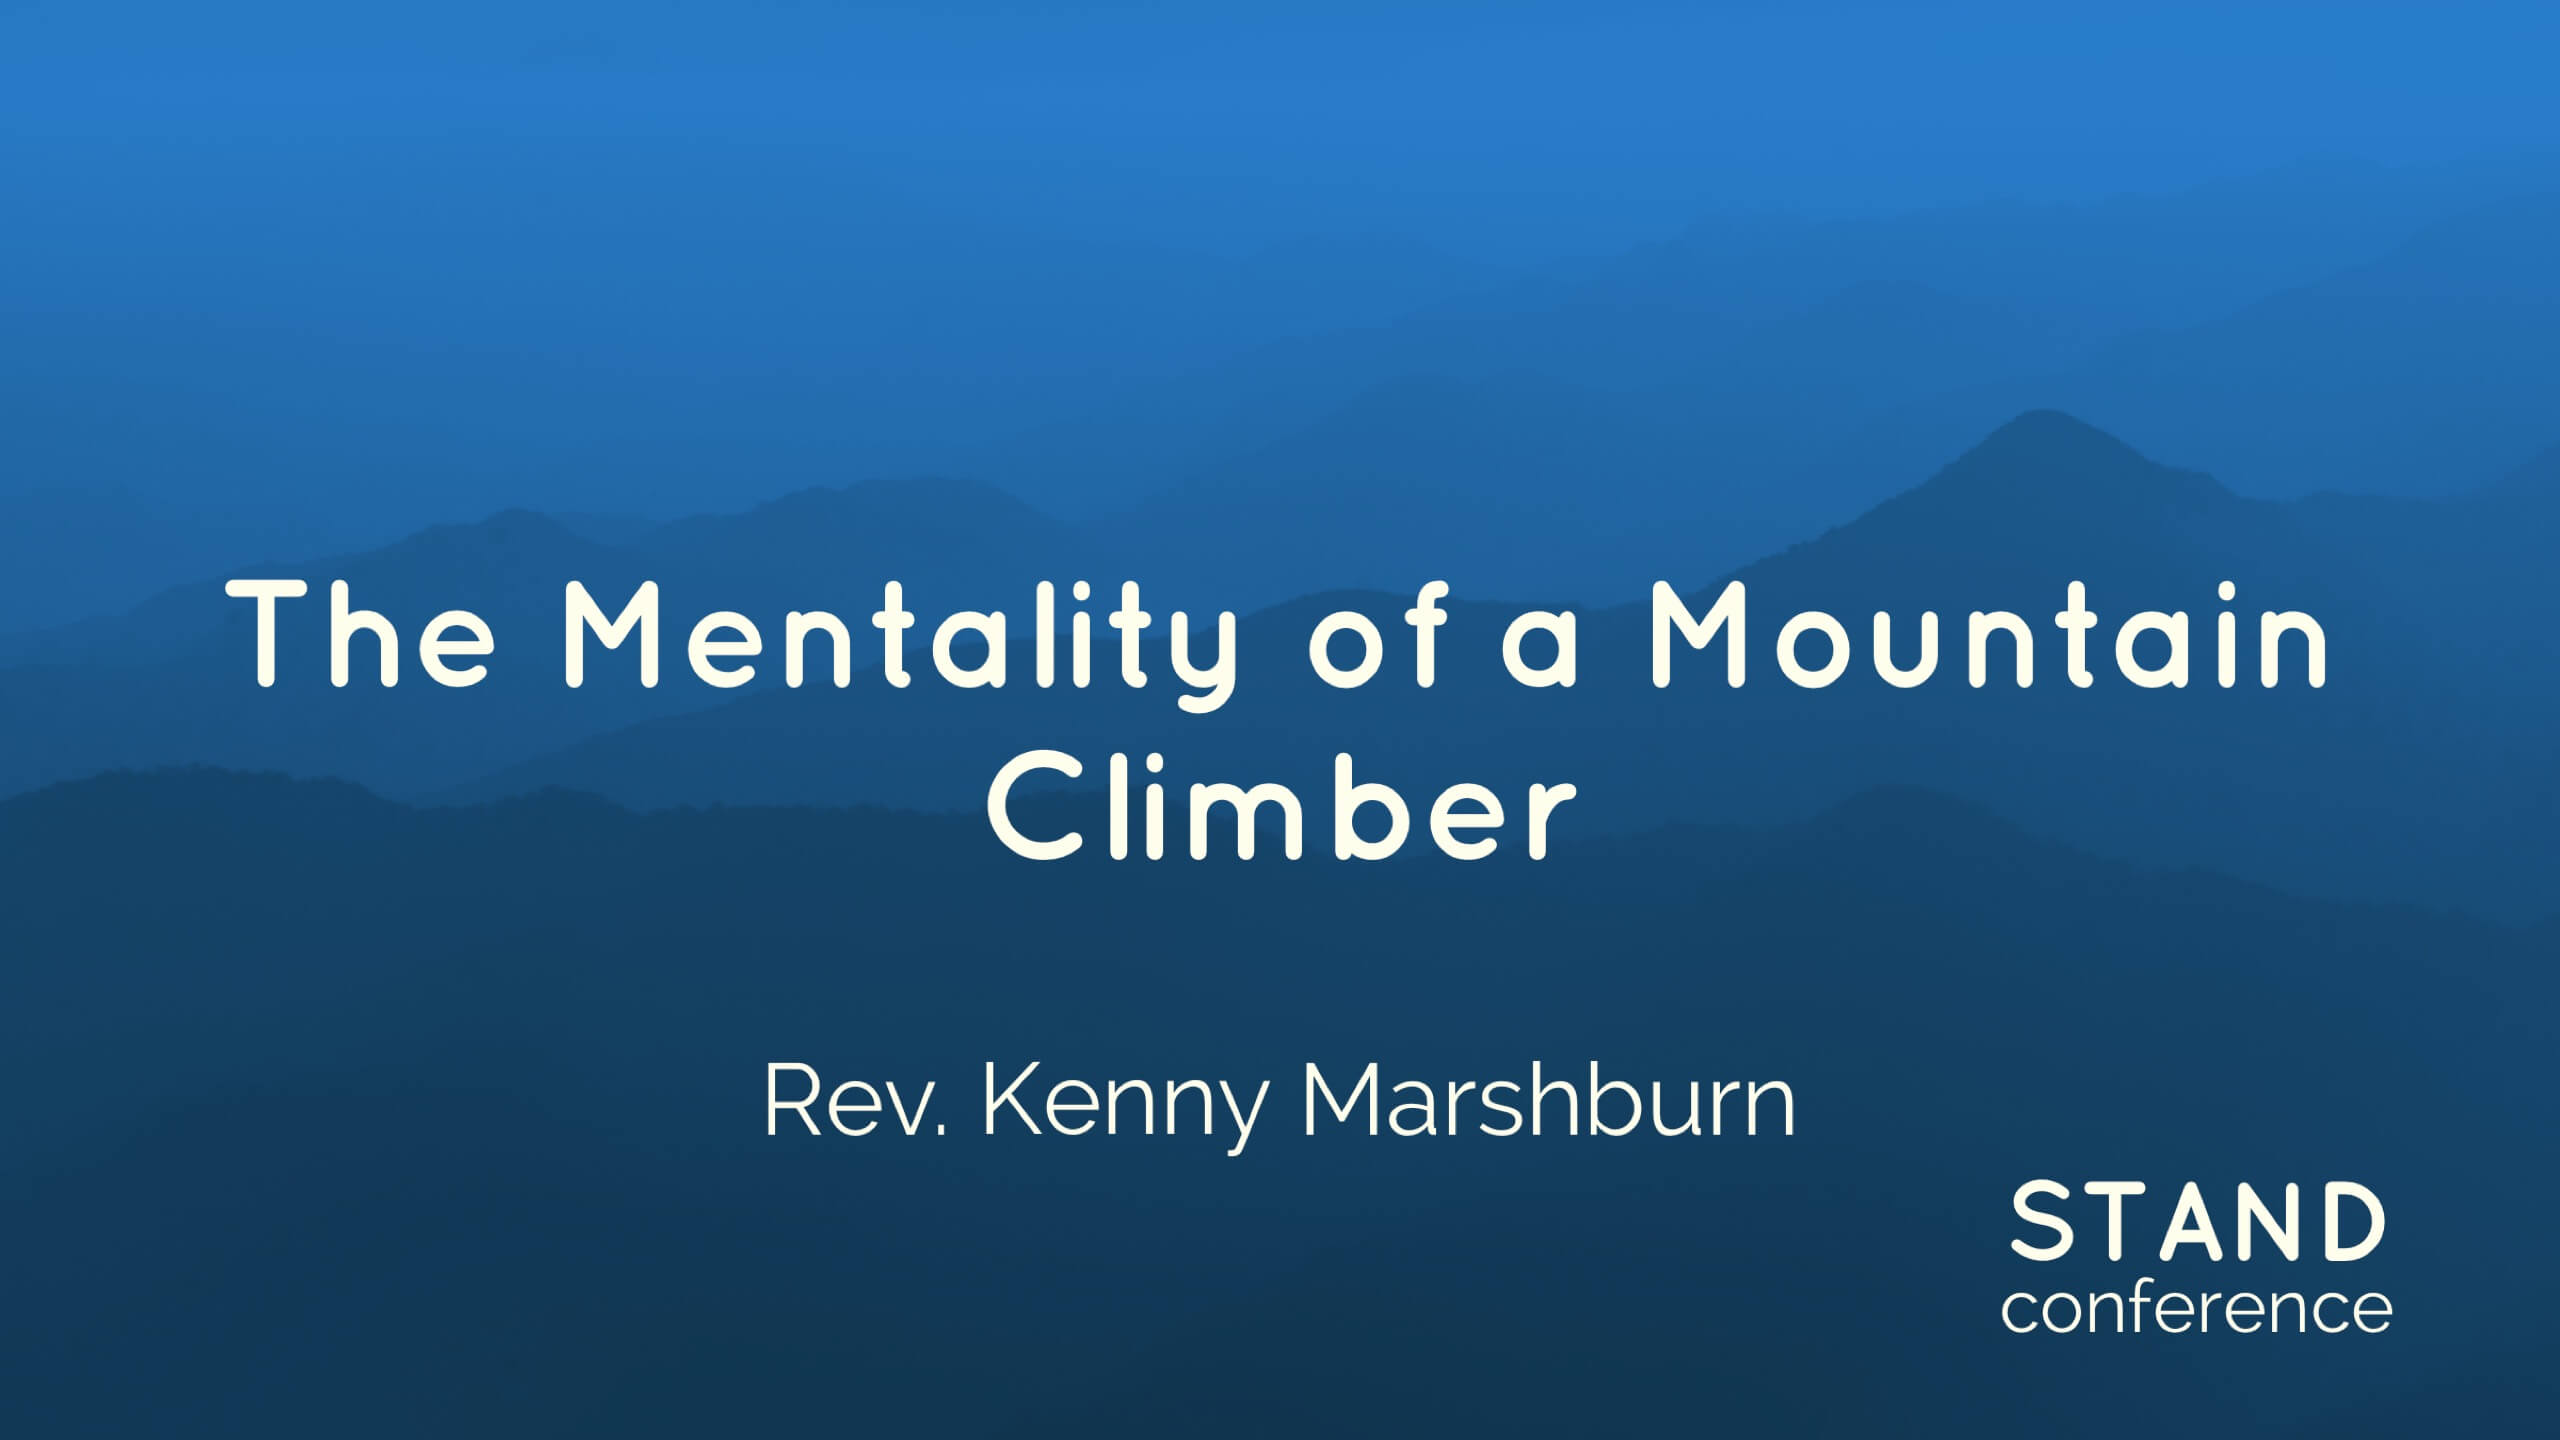 The Mentality of a Mountain Climber